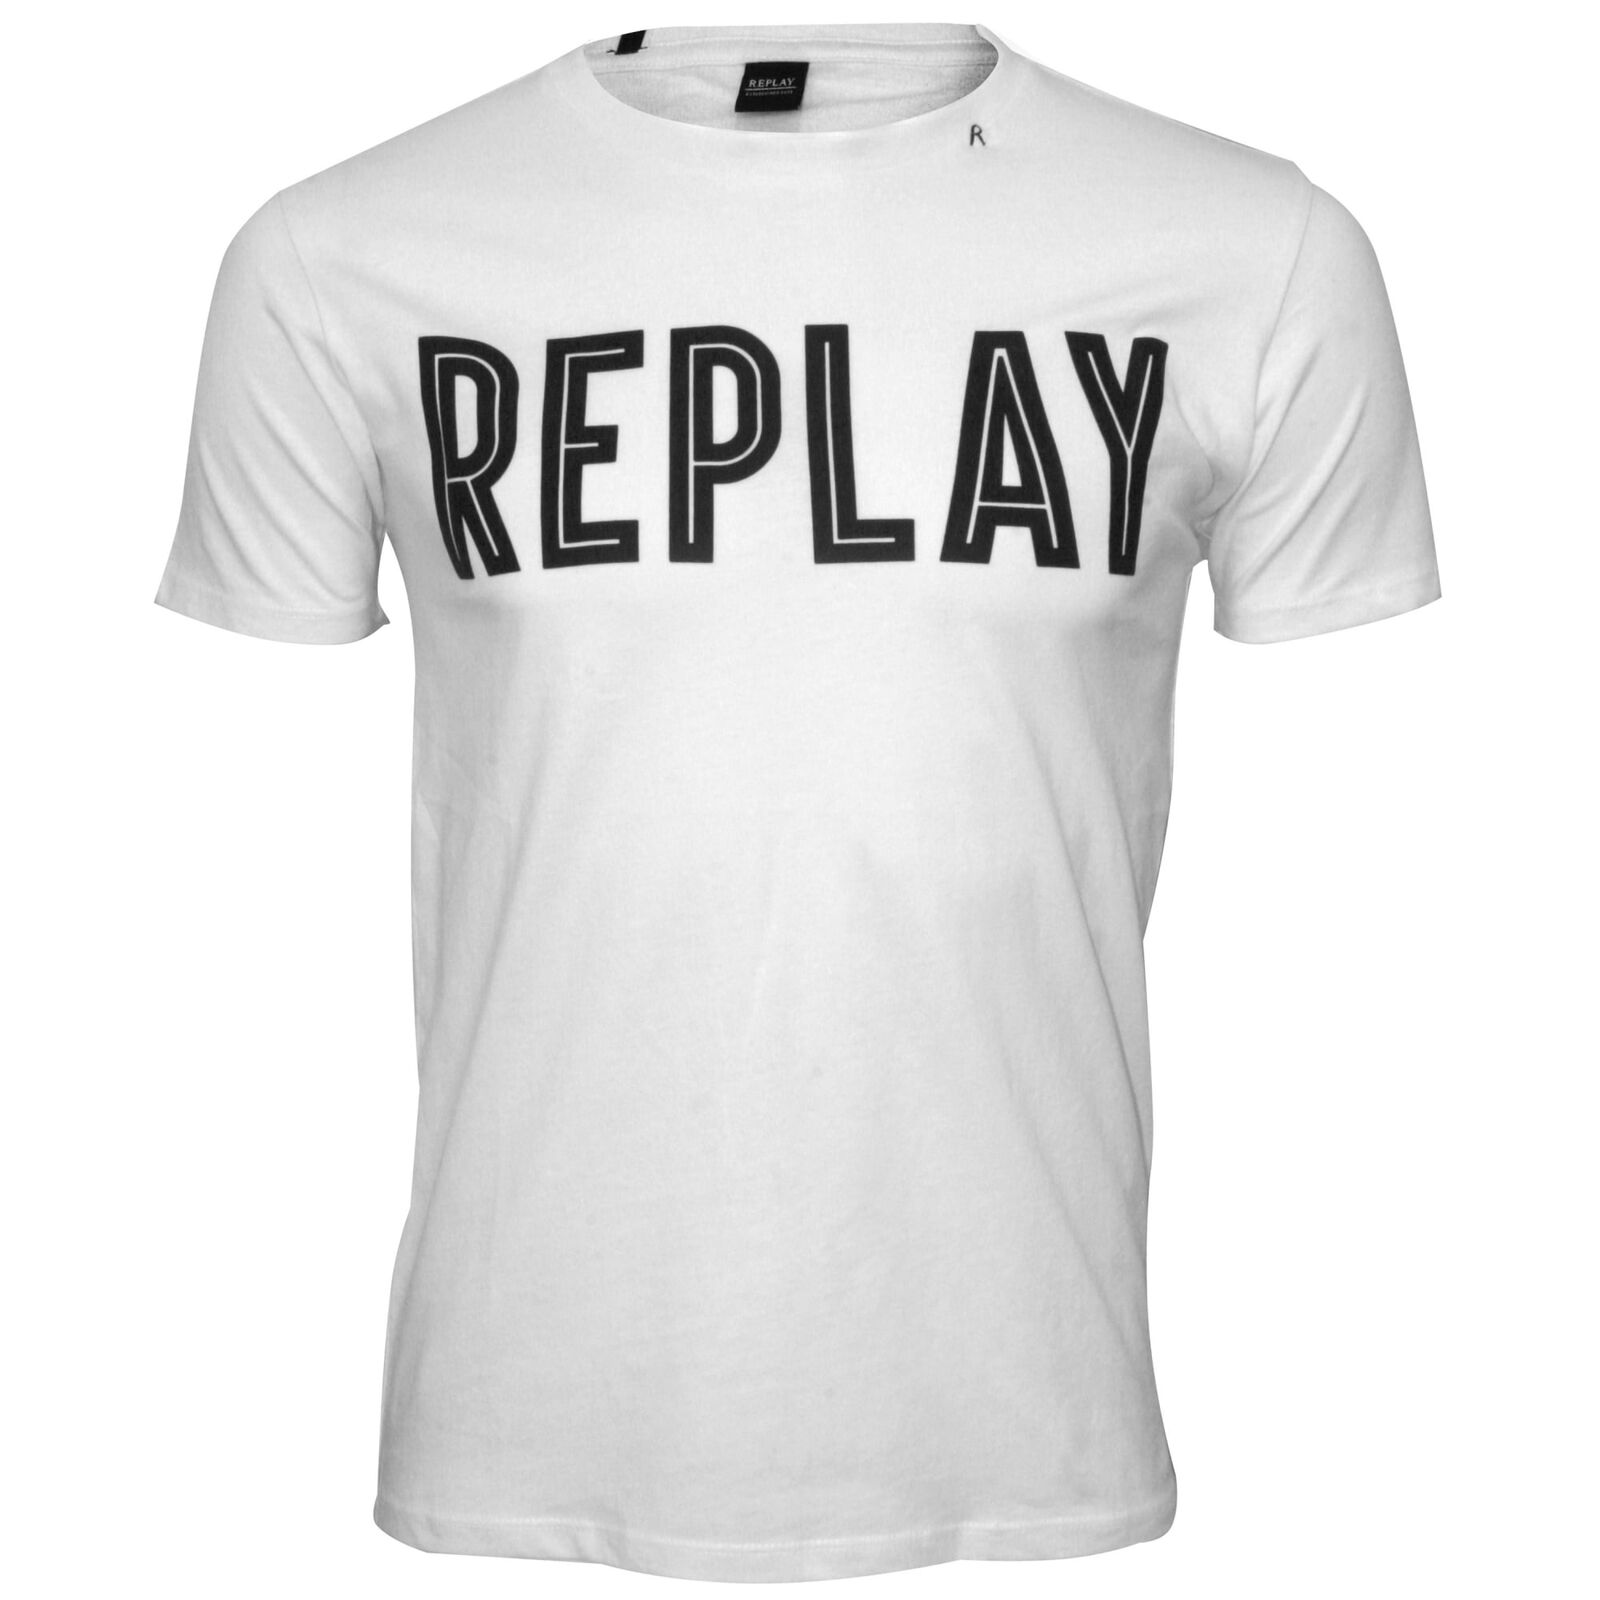 efab0b74 REPLAY BOLD LOGO Men's T-Shirt, White - $39.62 | PicClick